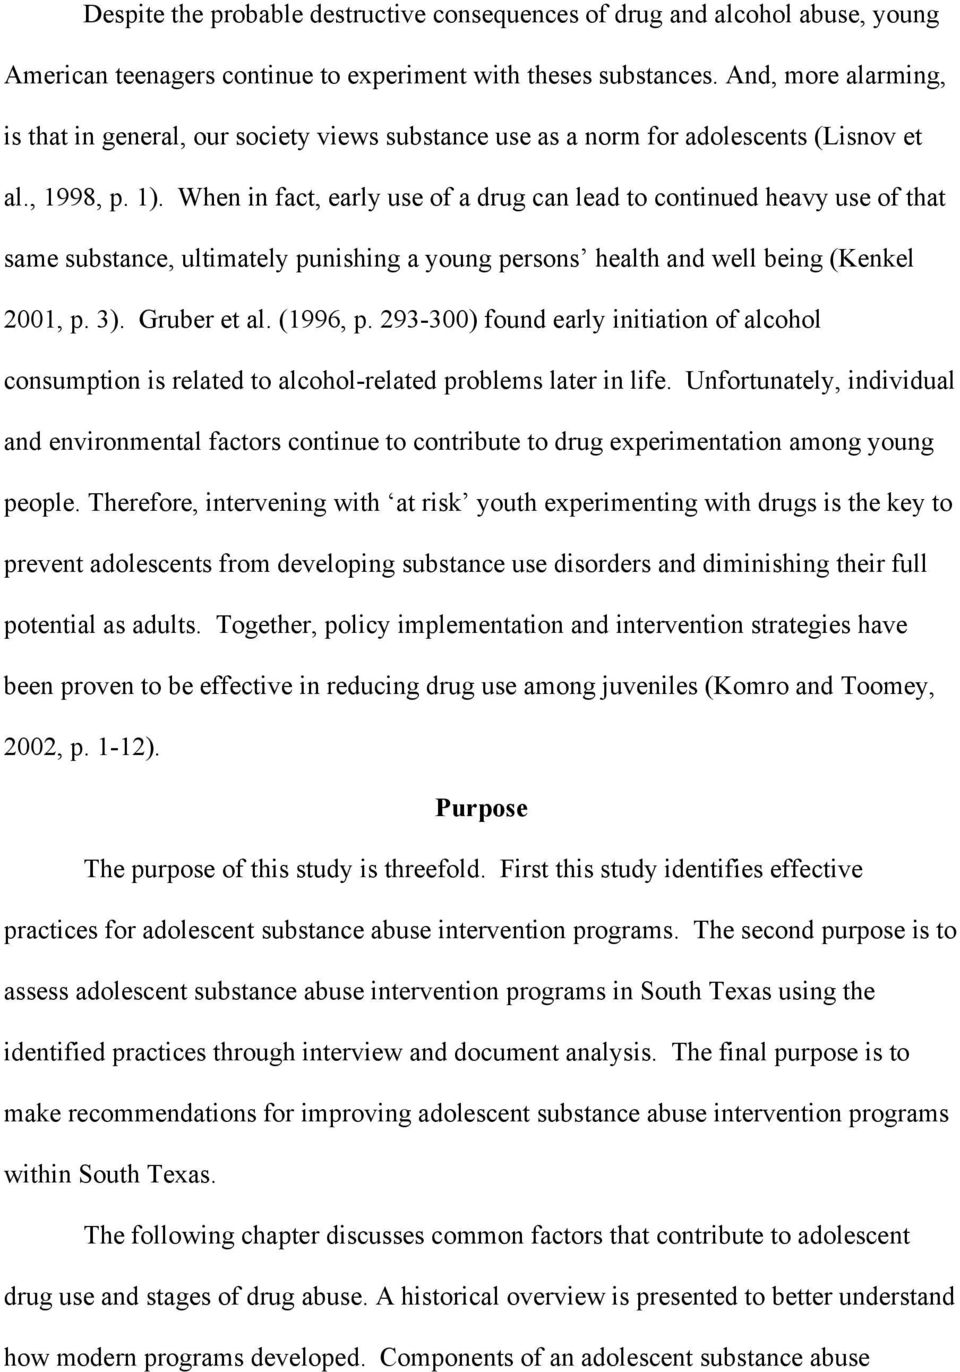 When in fact, early use of a drug can lead to continued heavy use of that same substance, ultimately punishing a young persons health and well being (Kenkel 2001, p. 3). Gruber et al. (1996, p.